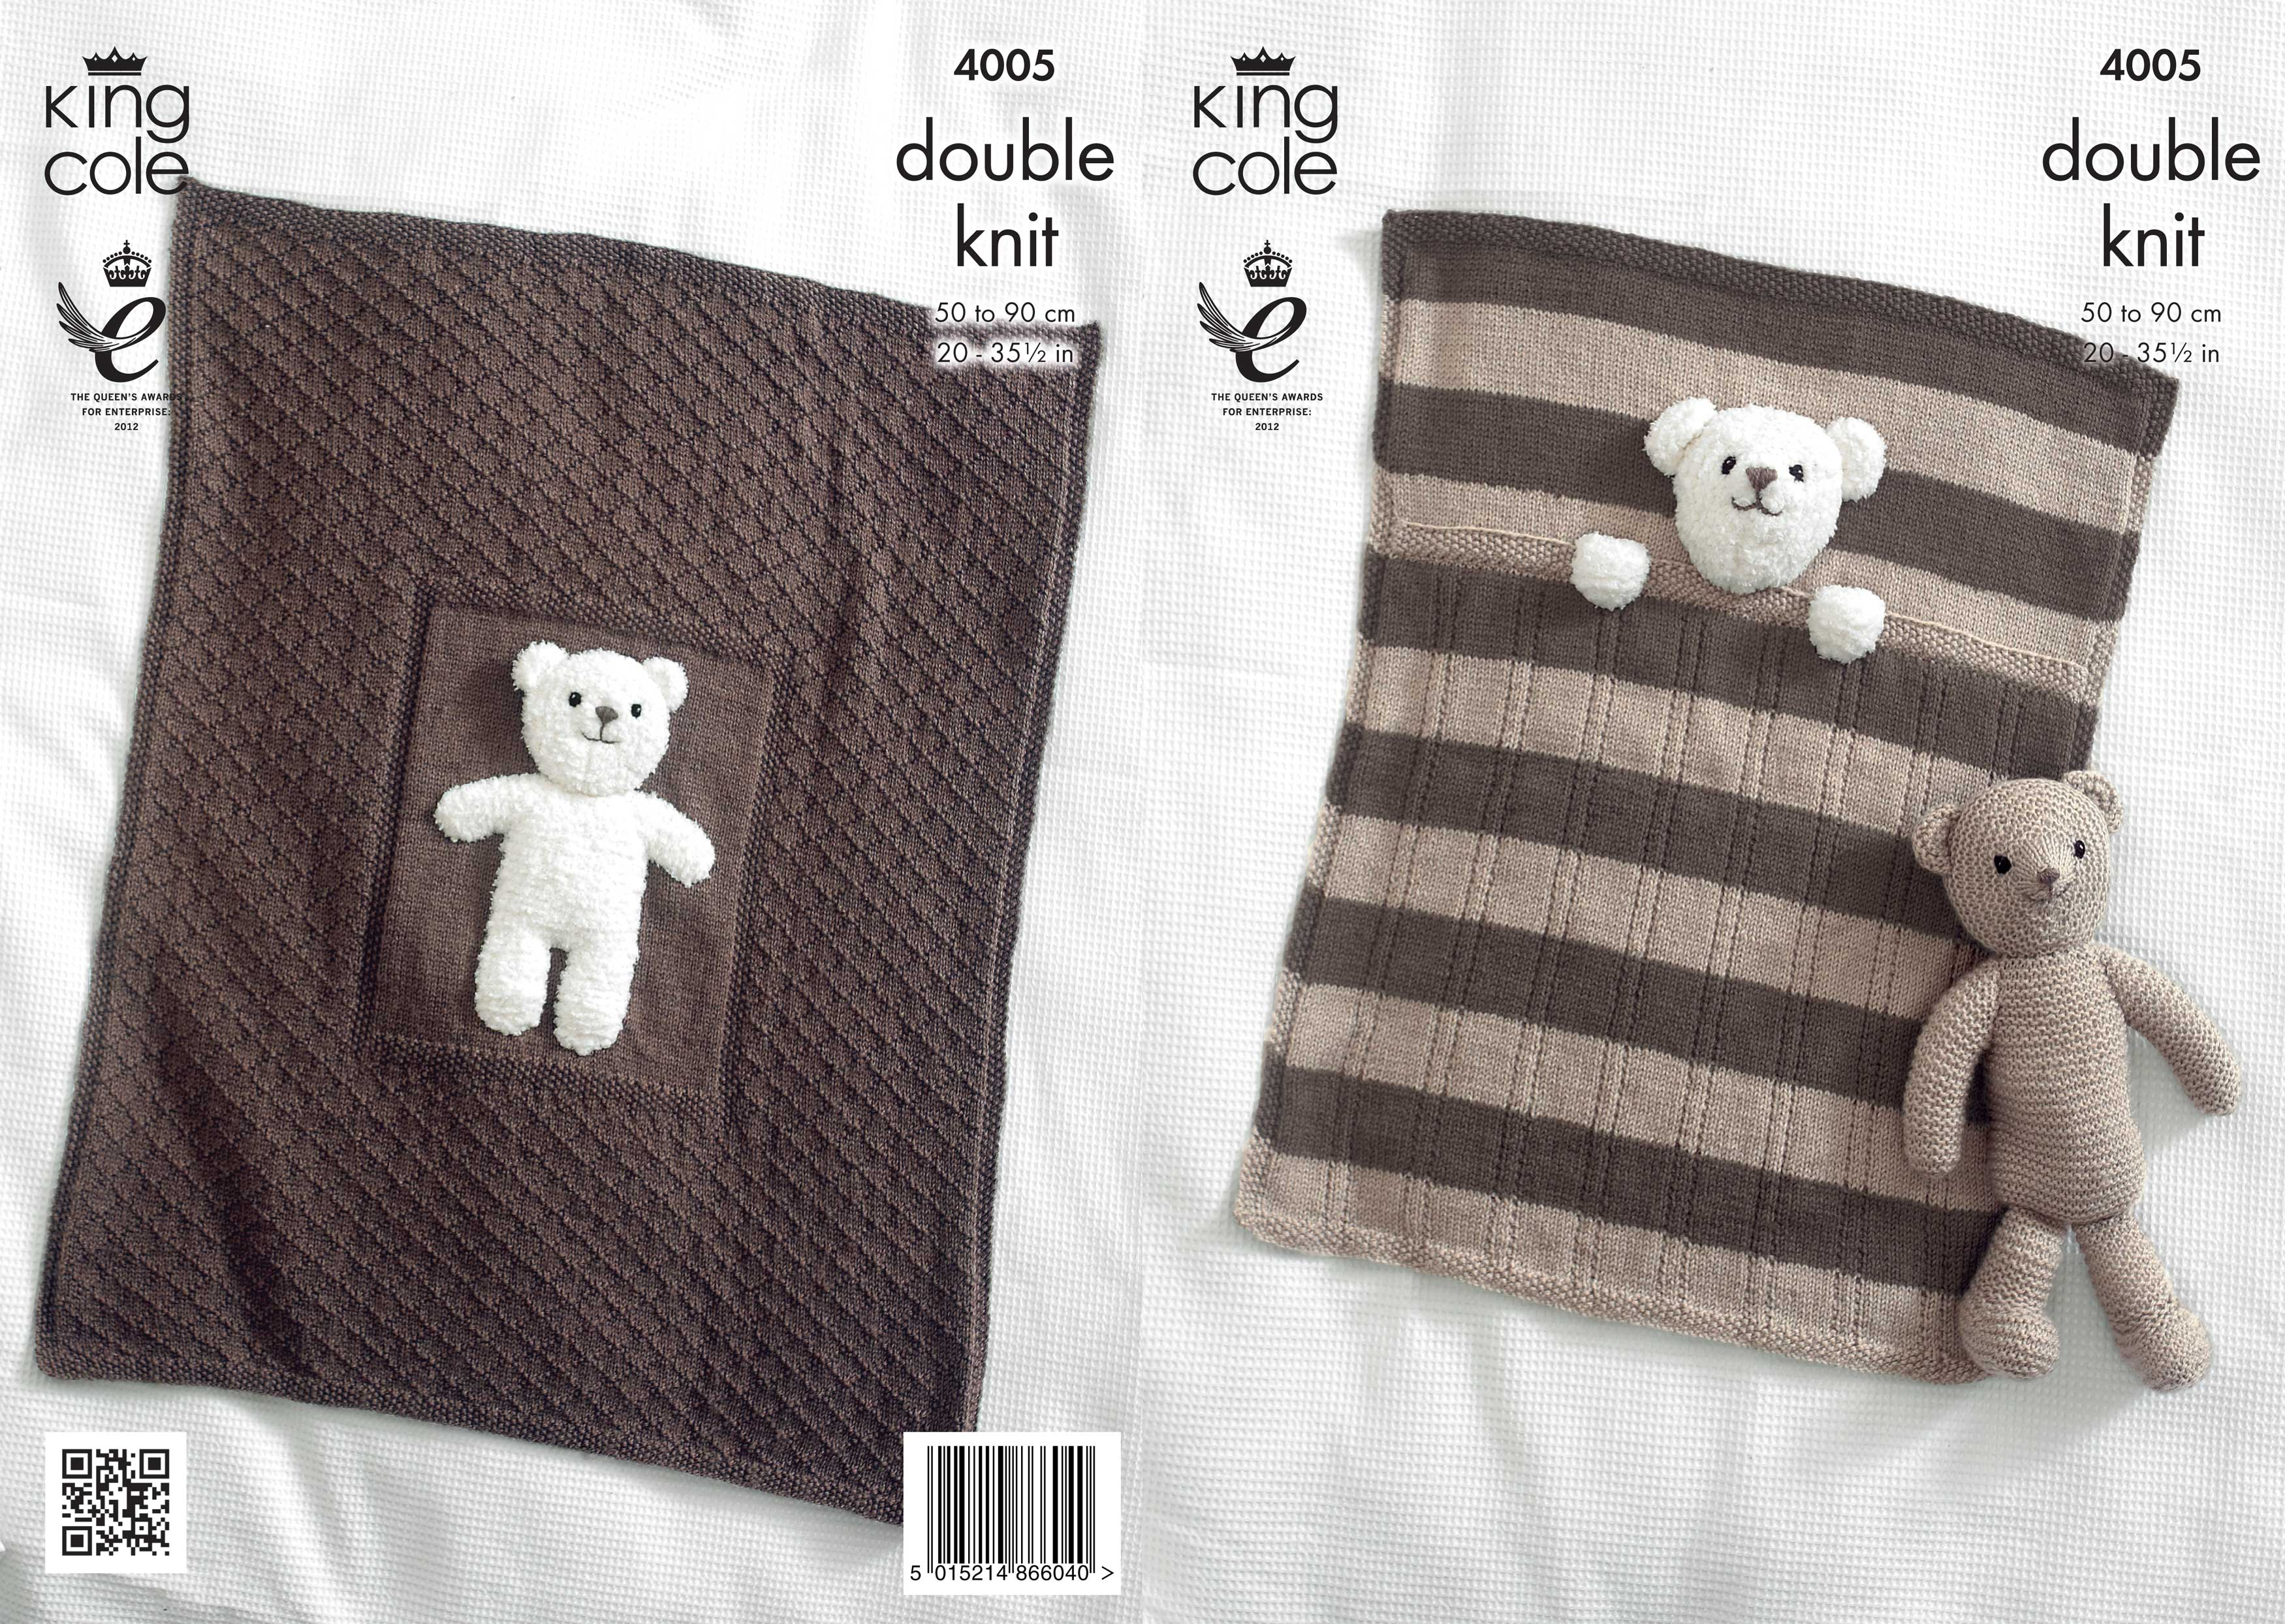 King cole double knitting pattern blanket teddy bear toy cuddles item description this king cole 4005 double knitting pattern bankloansurffo Choice Image